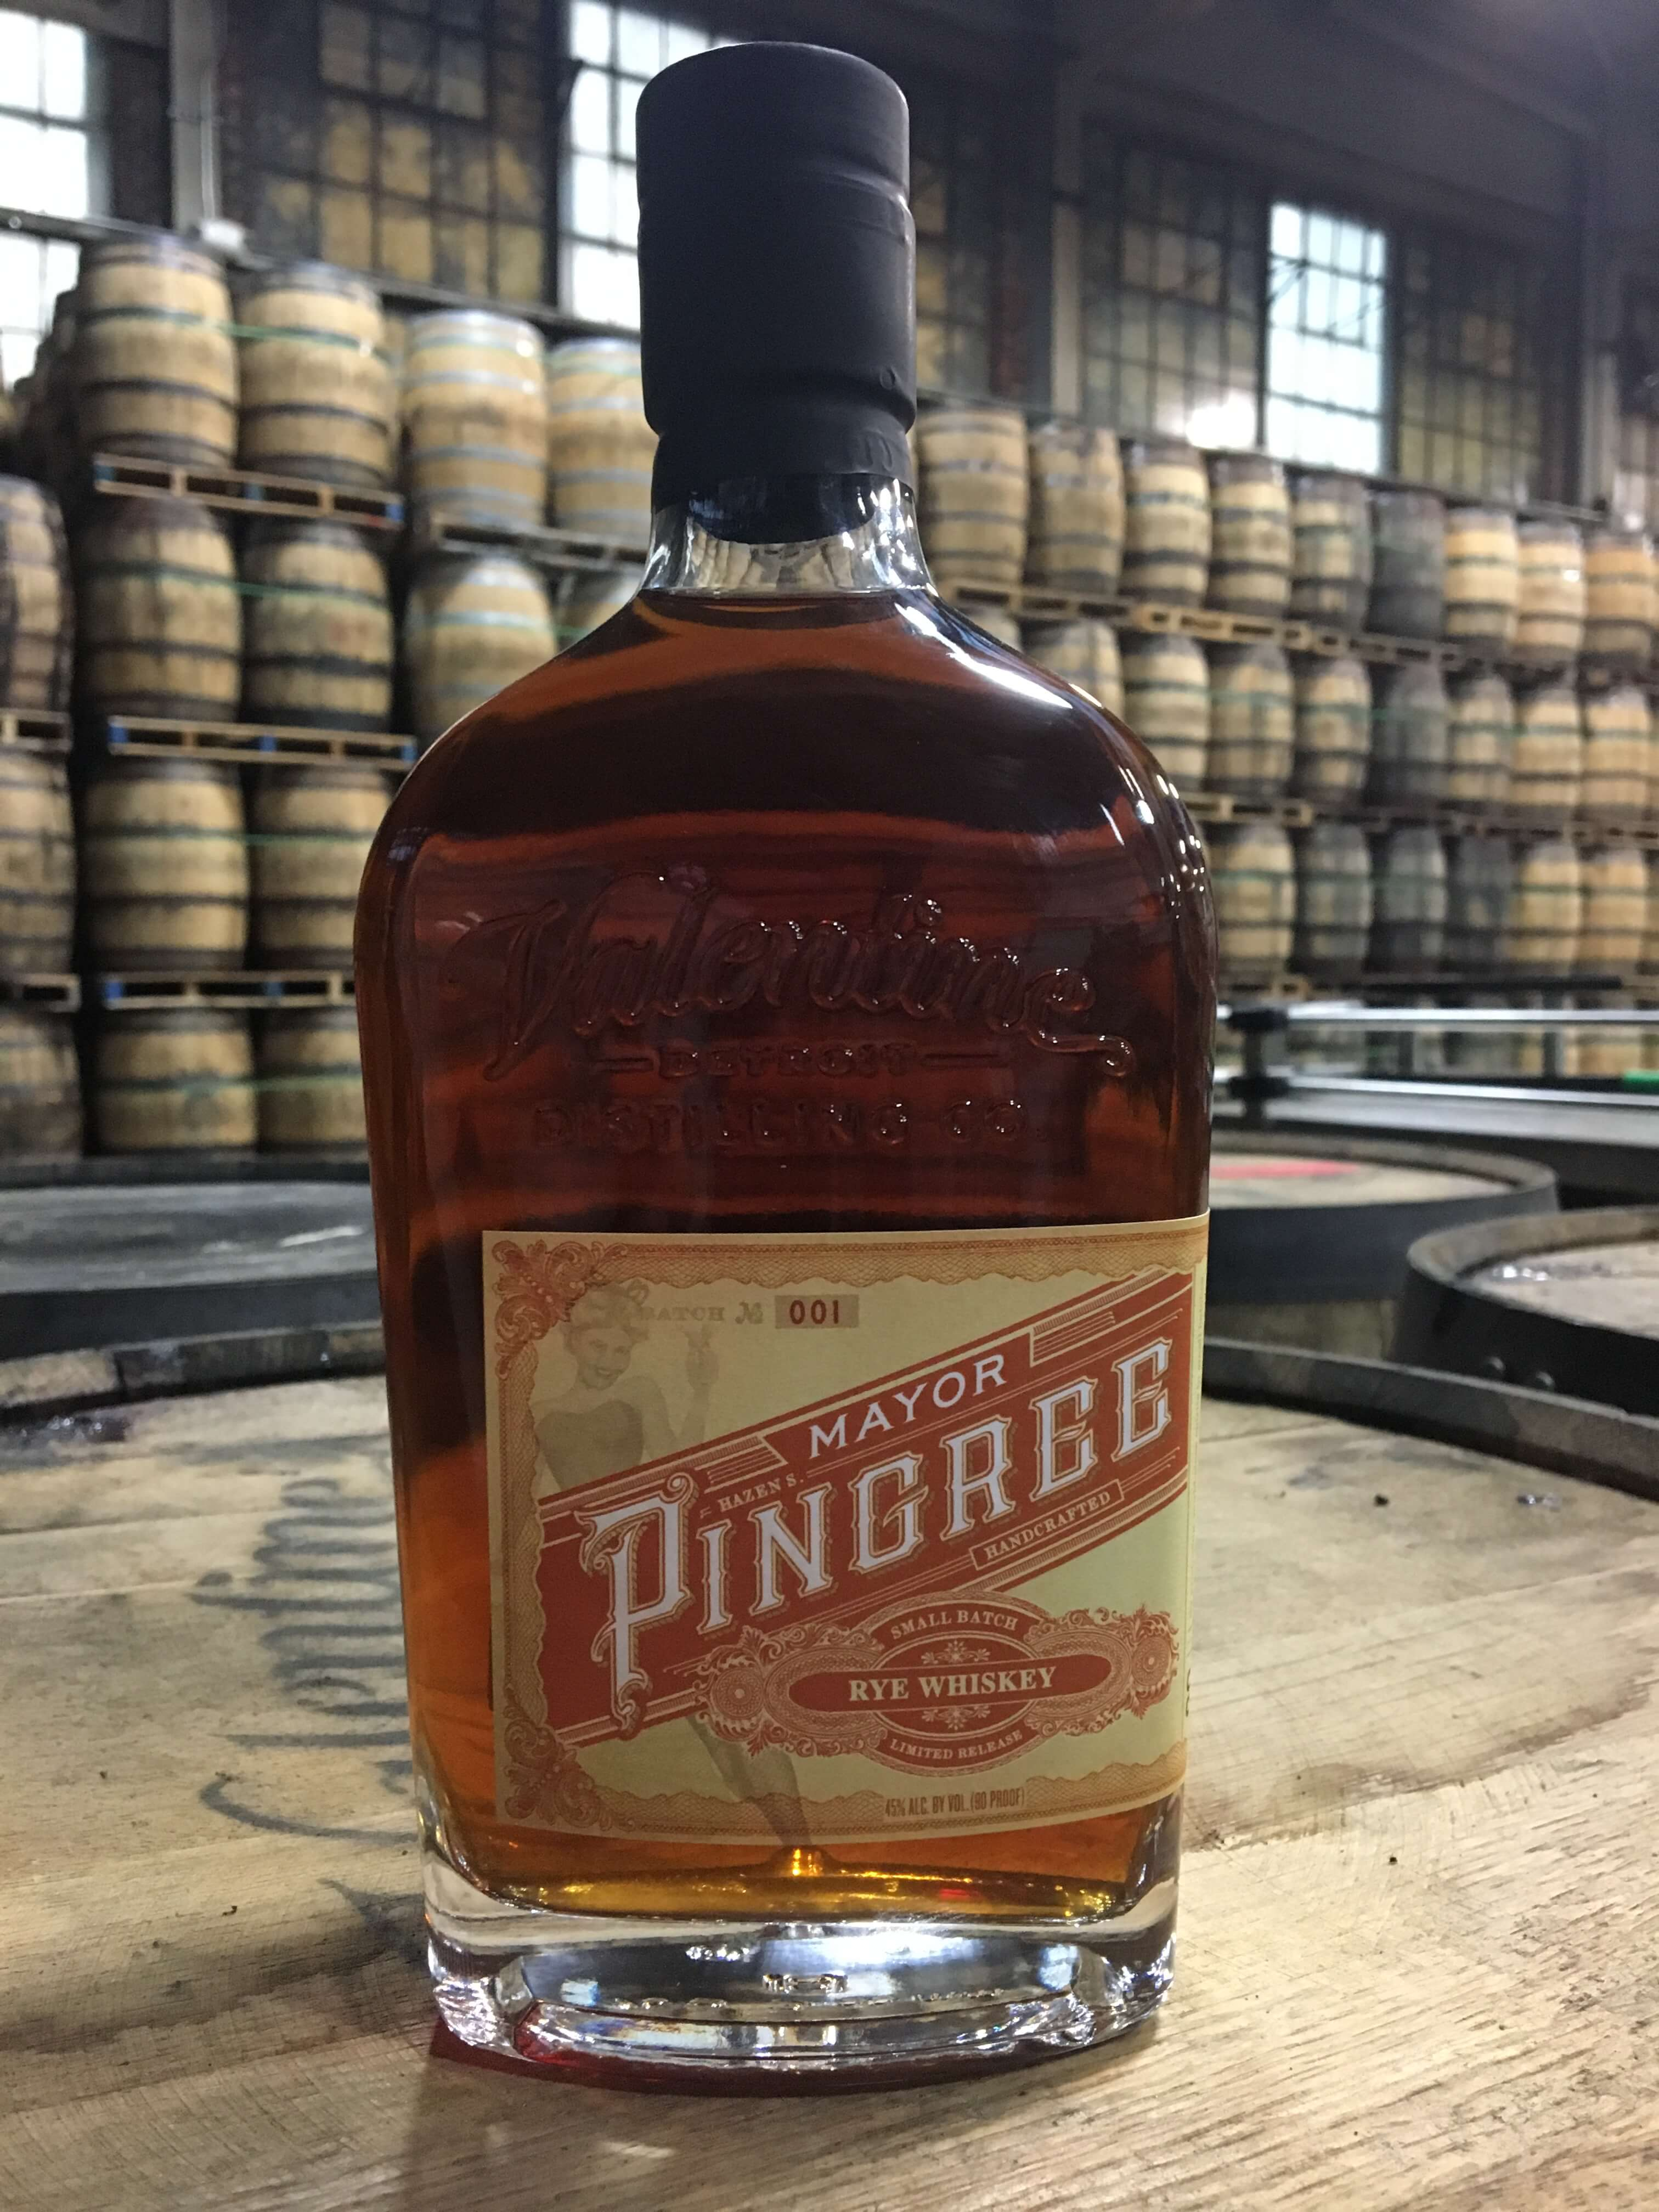 Valentine Distilling Co. begins stocking shelves with Mayor Pingree Rye Whiskey - What's Shakin' week of July 10